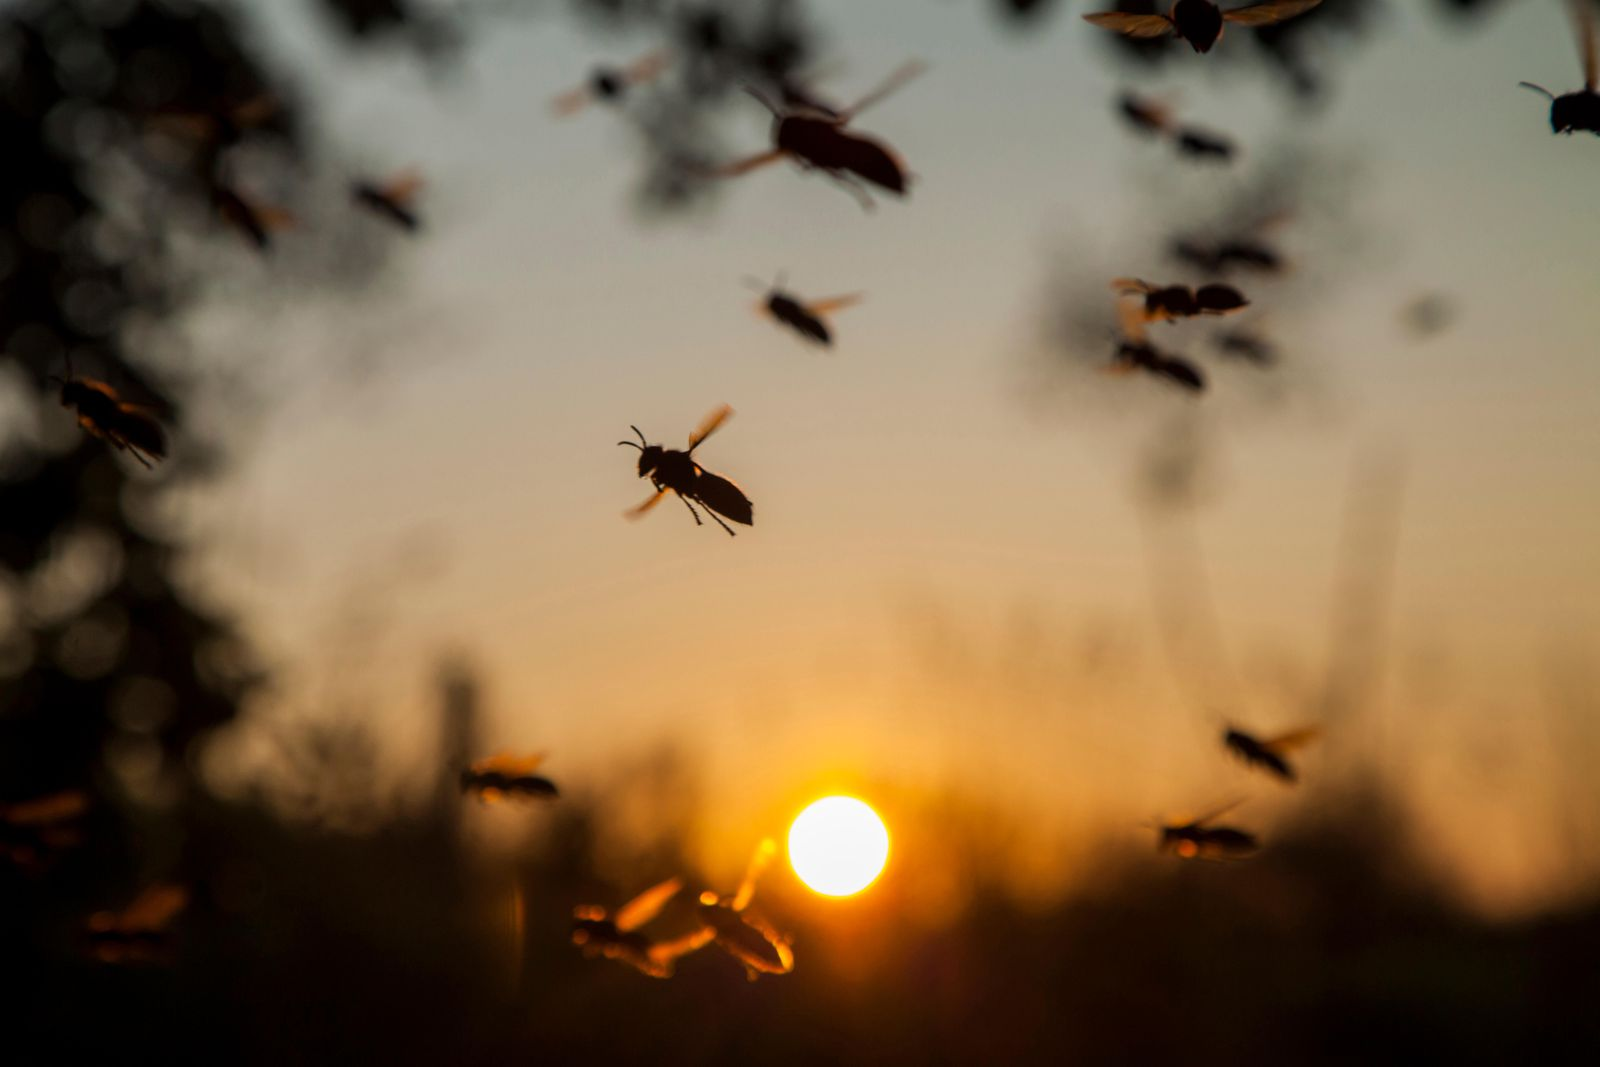 Do you Know How Many Kinds of Insects Exist in the World